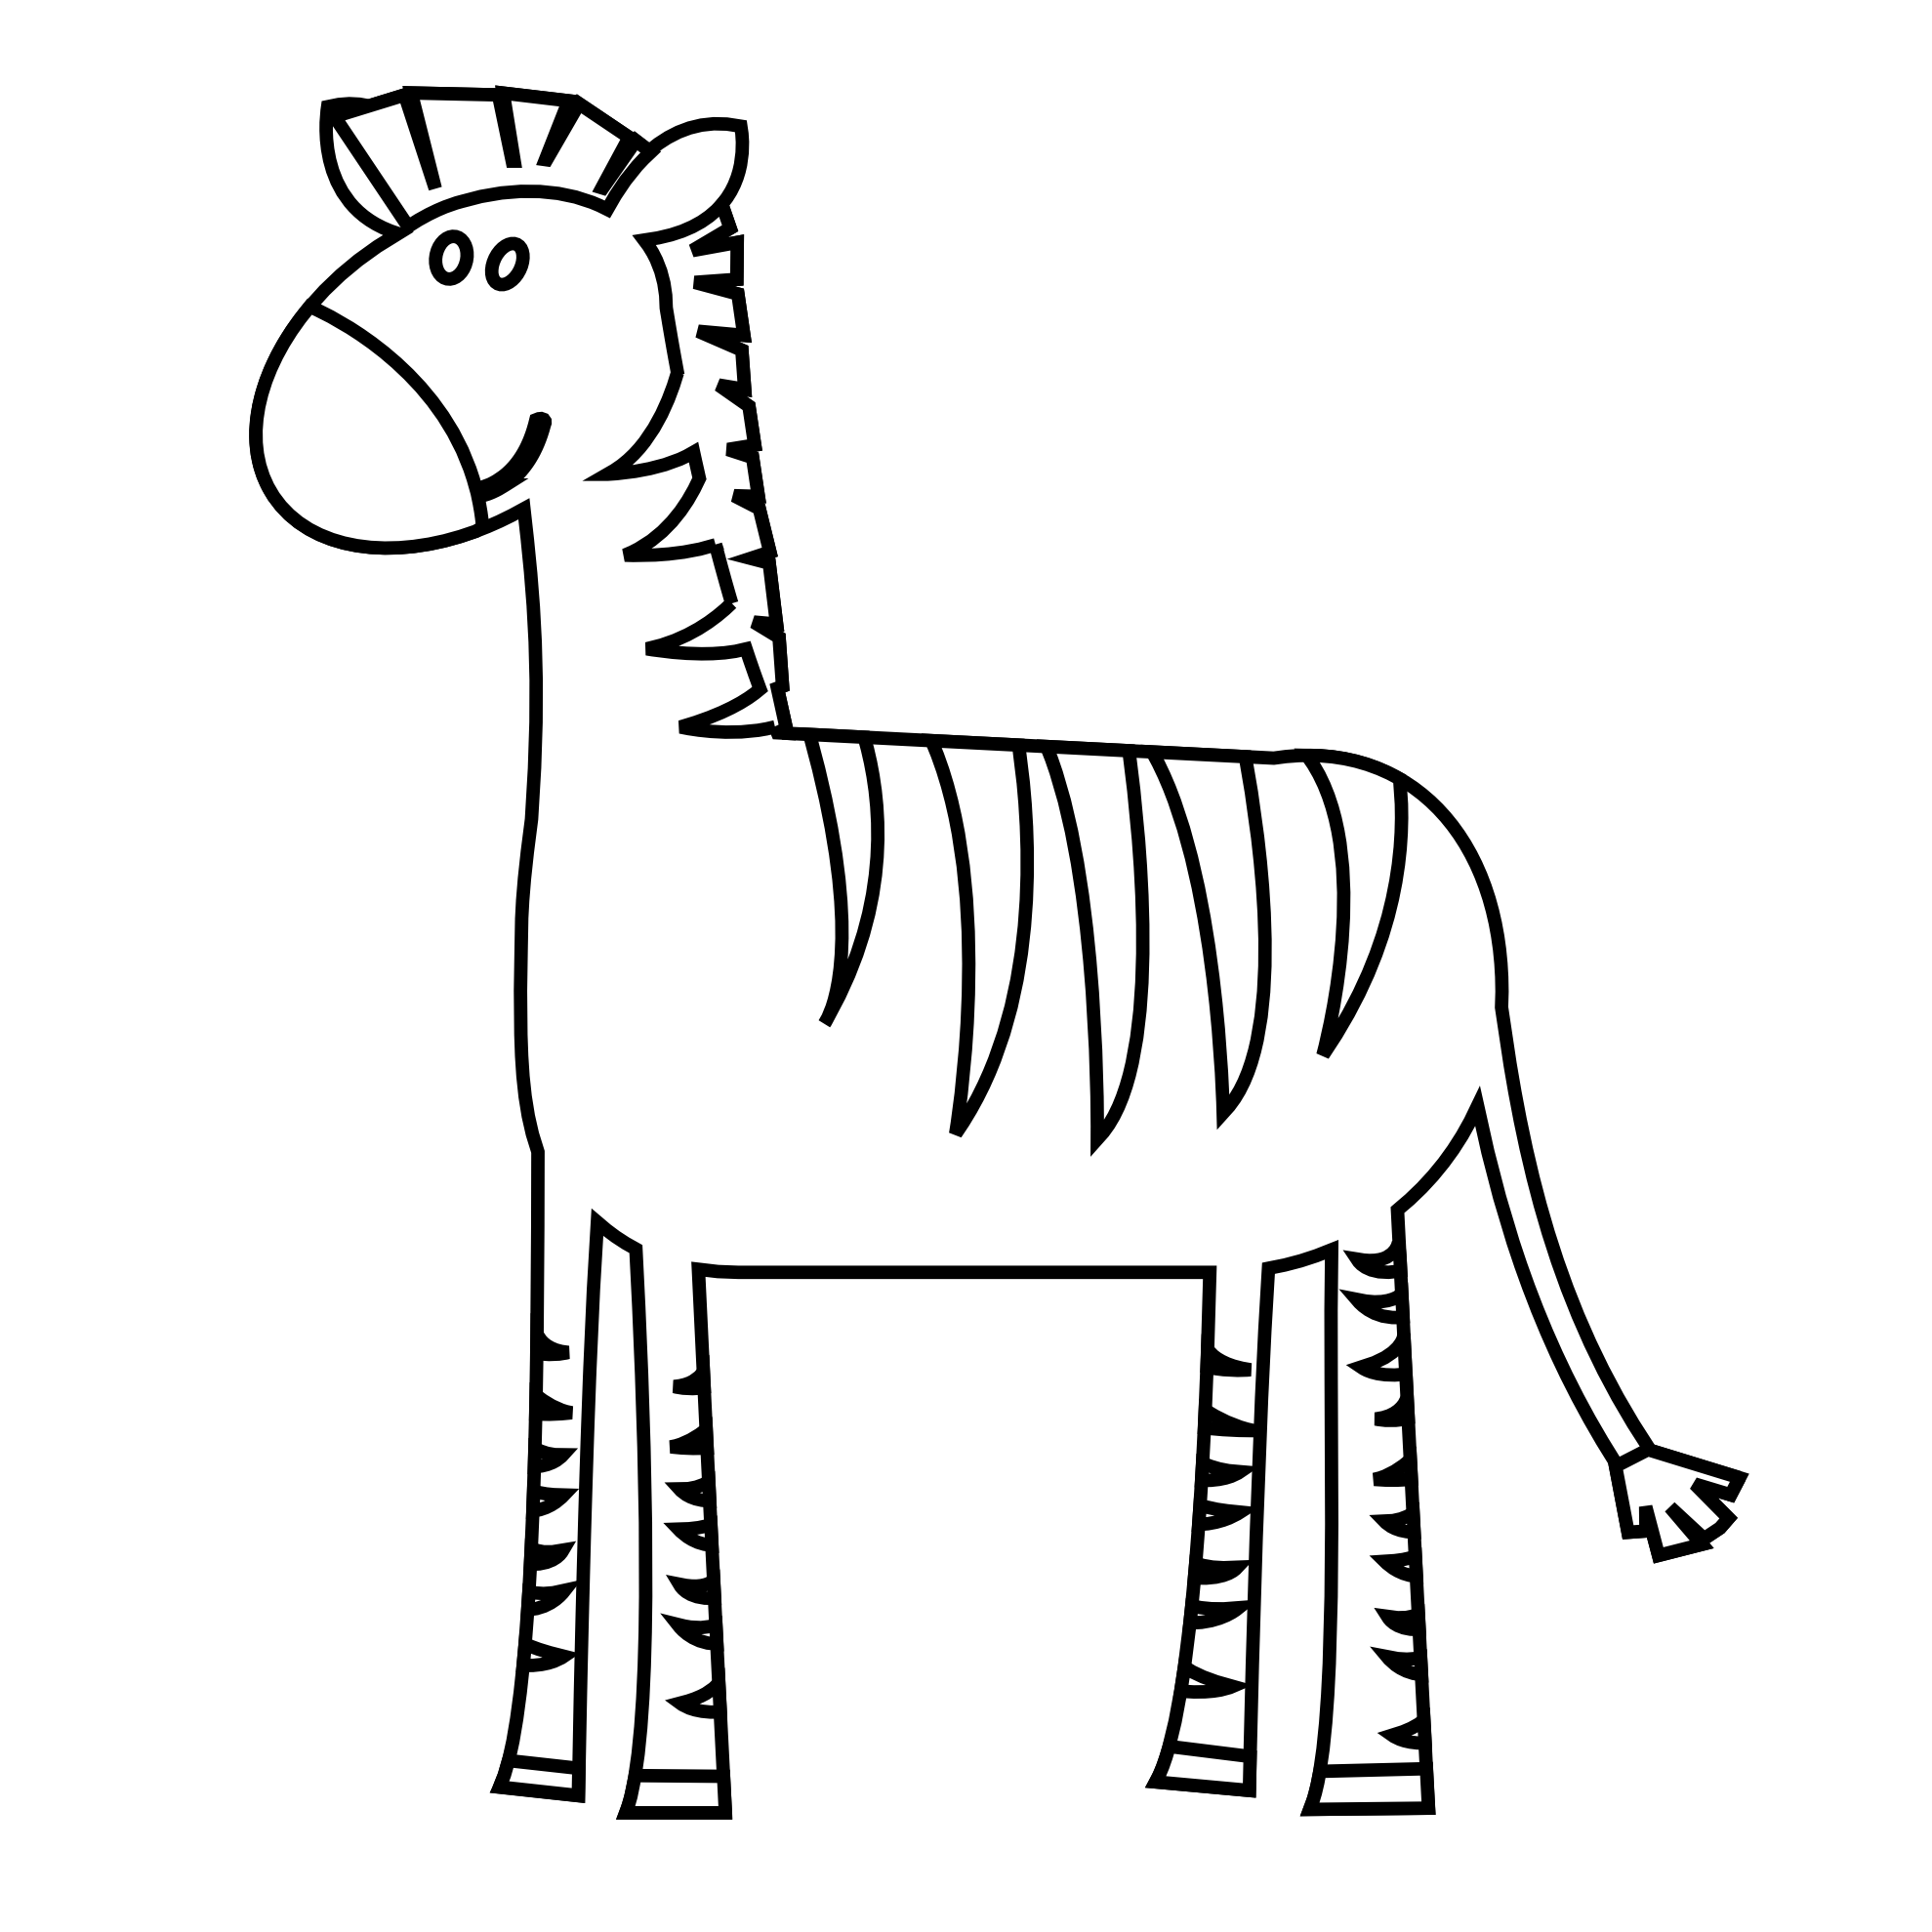 Line Drawing Zebra : Zebras drawing clipart best